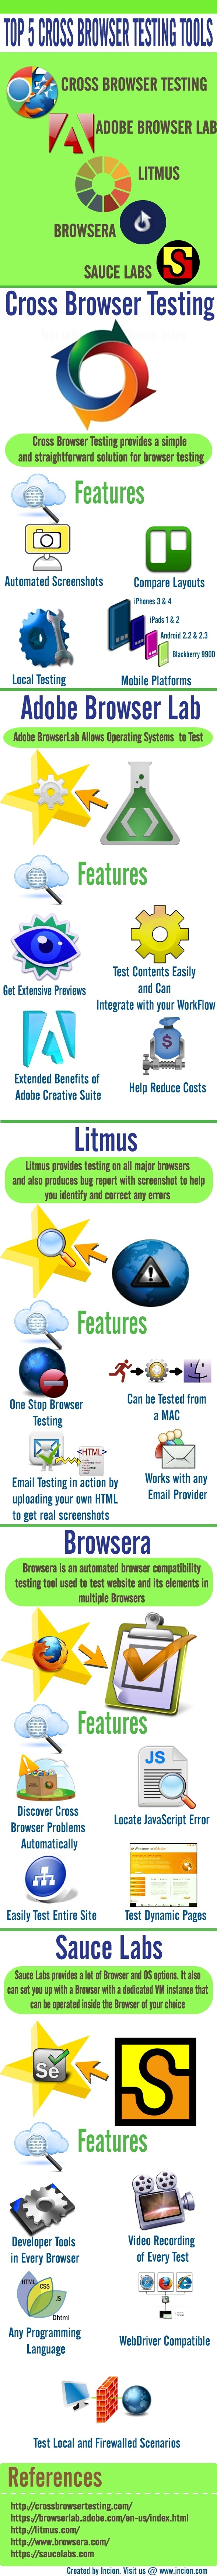 Infographic Any website designer knows the importance of Cross Browser Testing Tools www.socialmediamamma.com